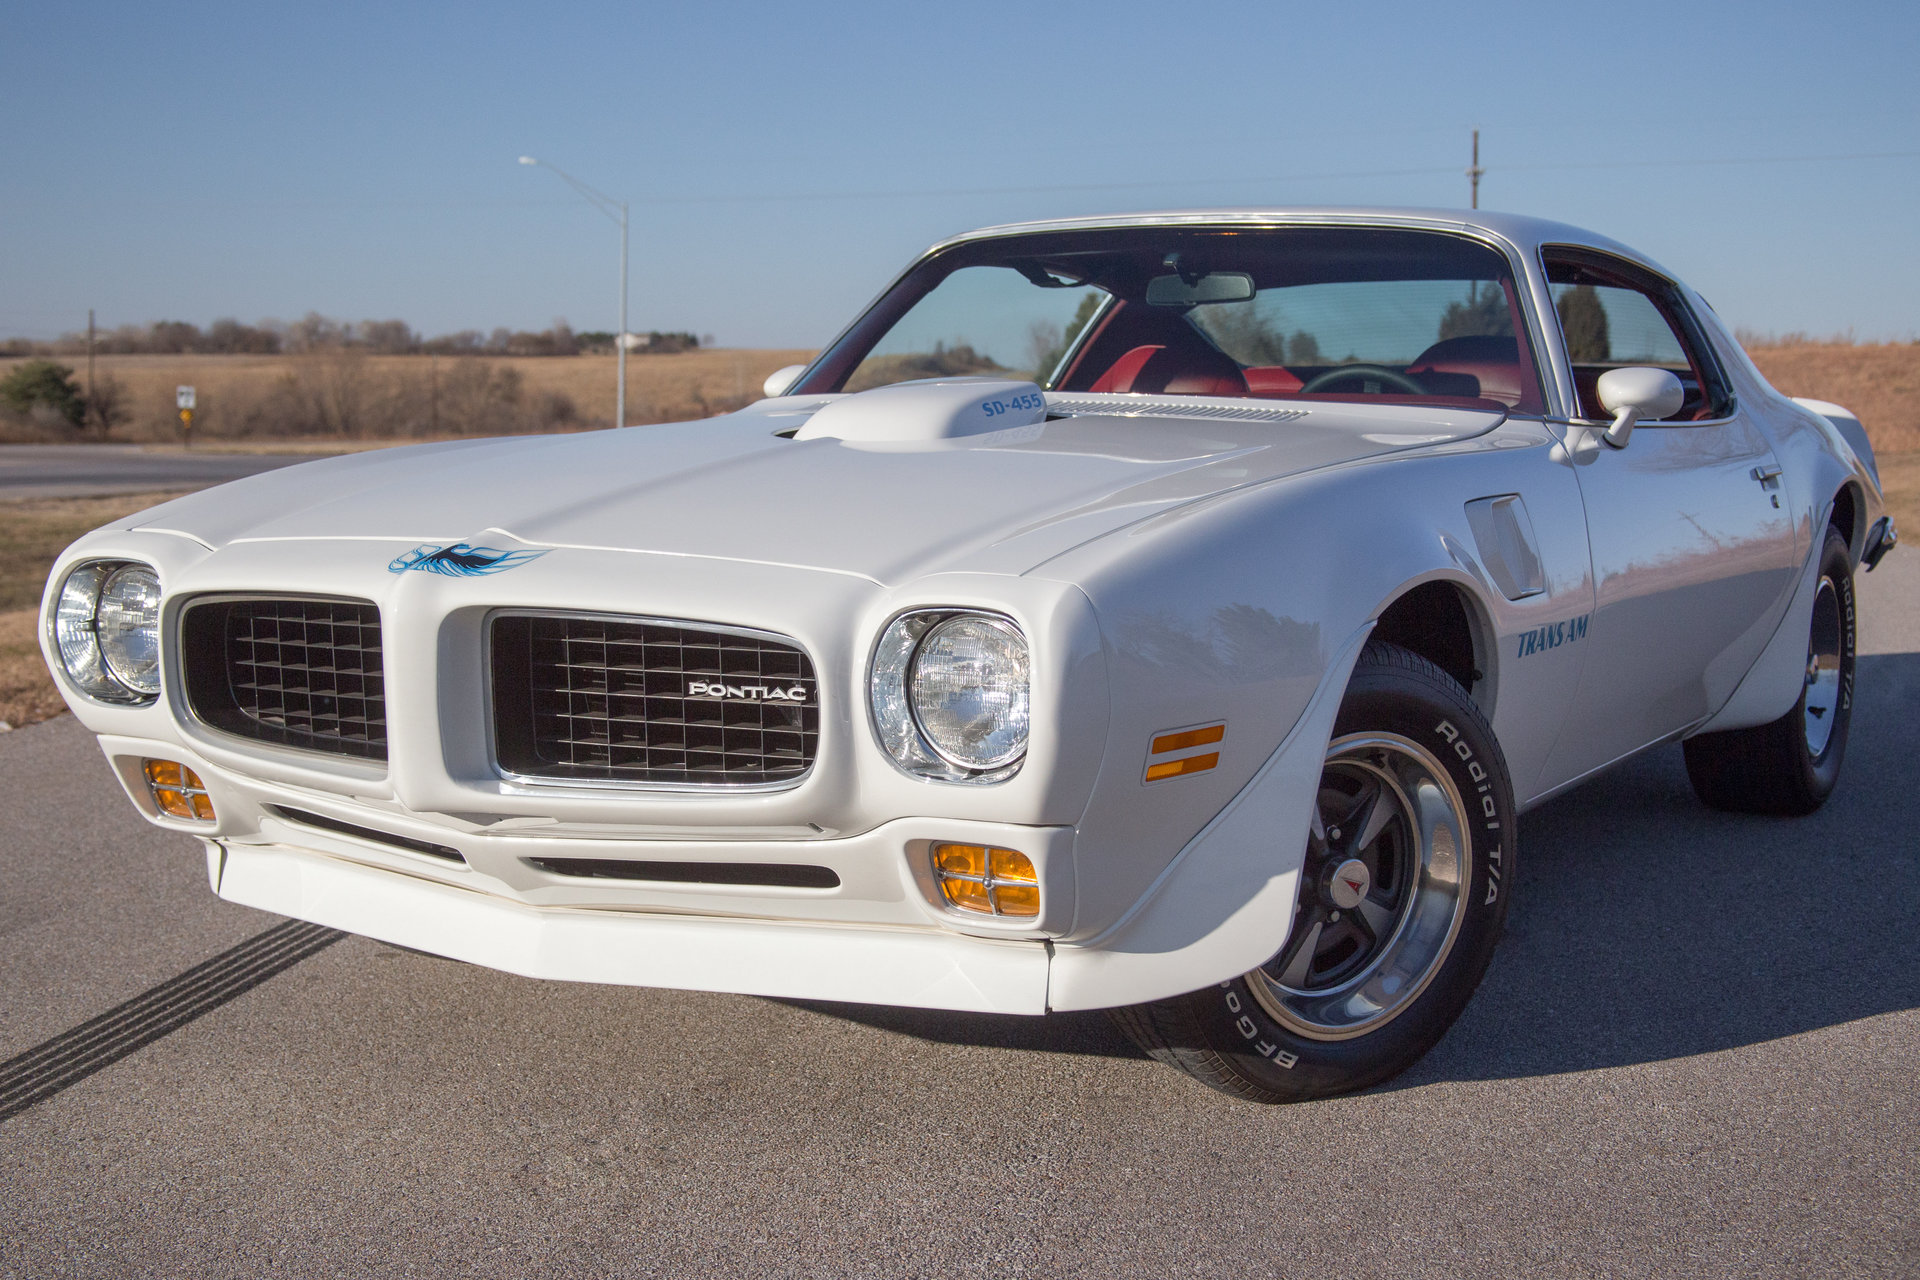 1973 Pontiac Trans Am Sd Restore A Muscle Car Llc